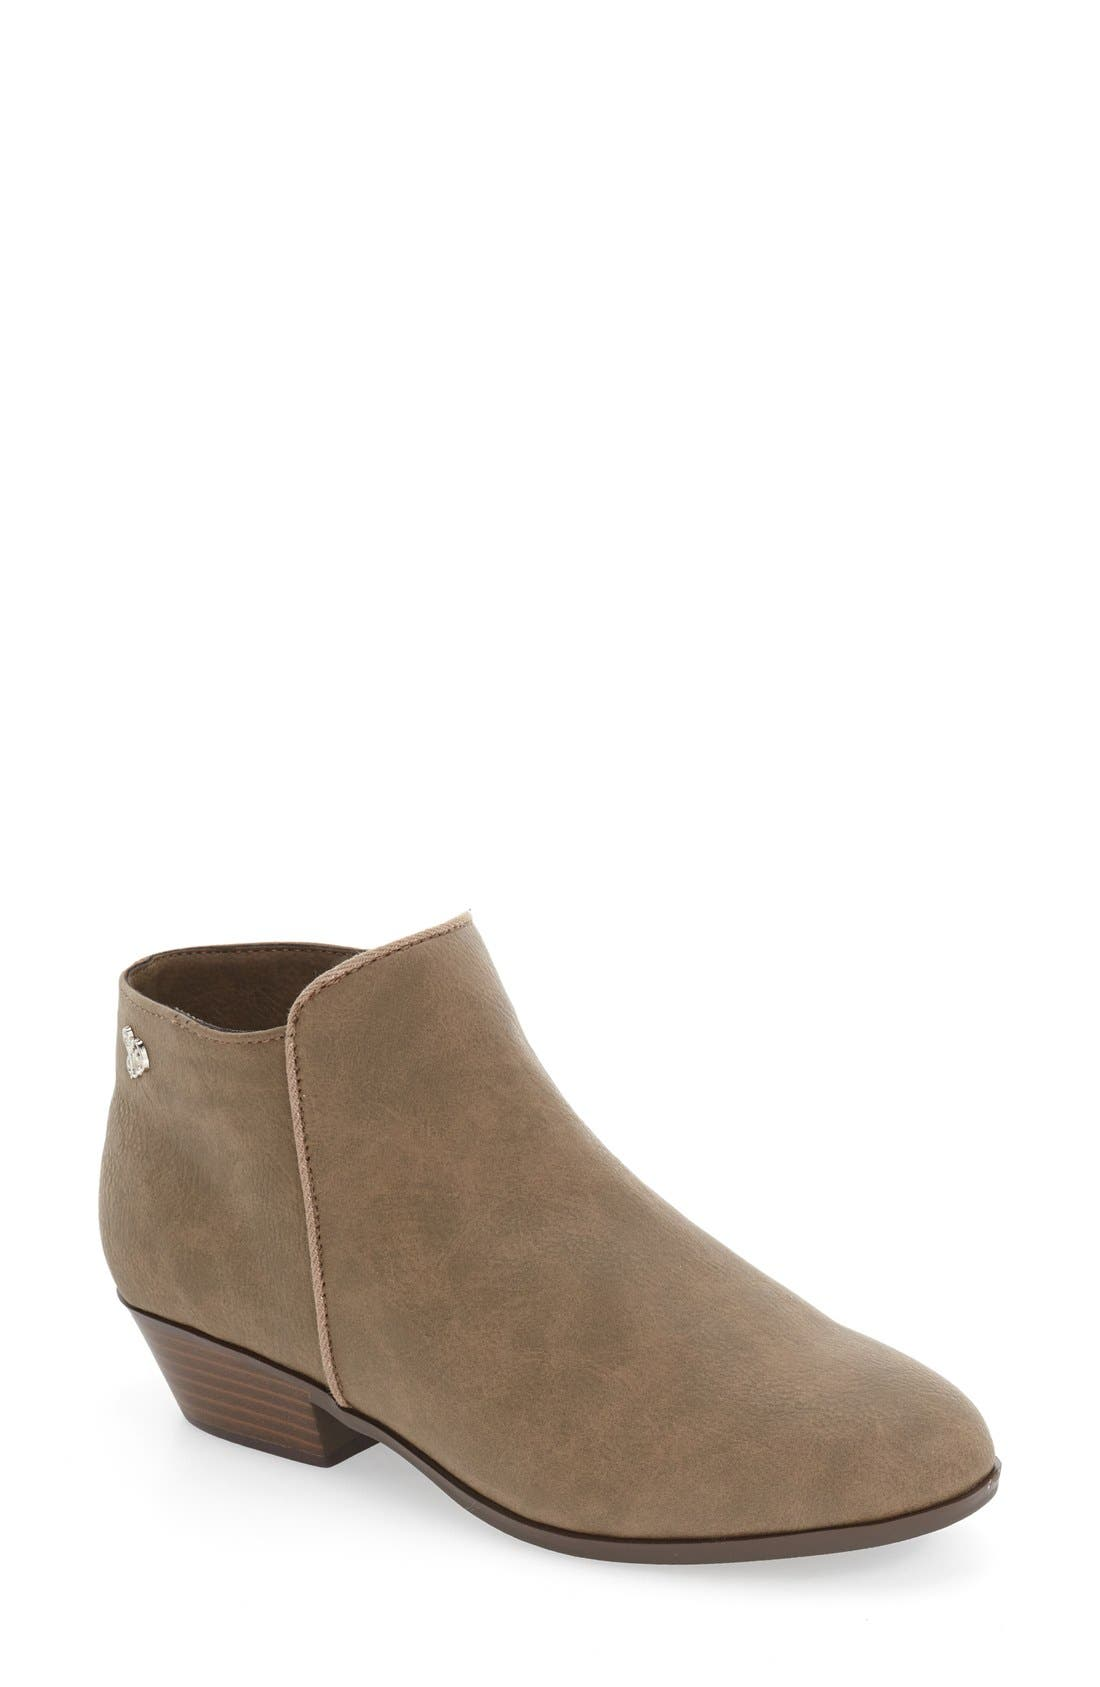 Alternate Image 1 Selected - Sam Edelman 'Petty' Bootie (Walker, Toddler, Little Kid & Big Kid)